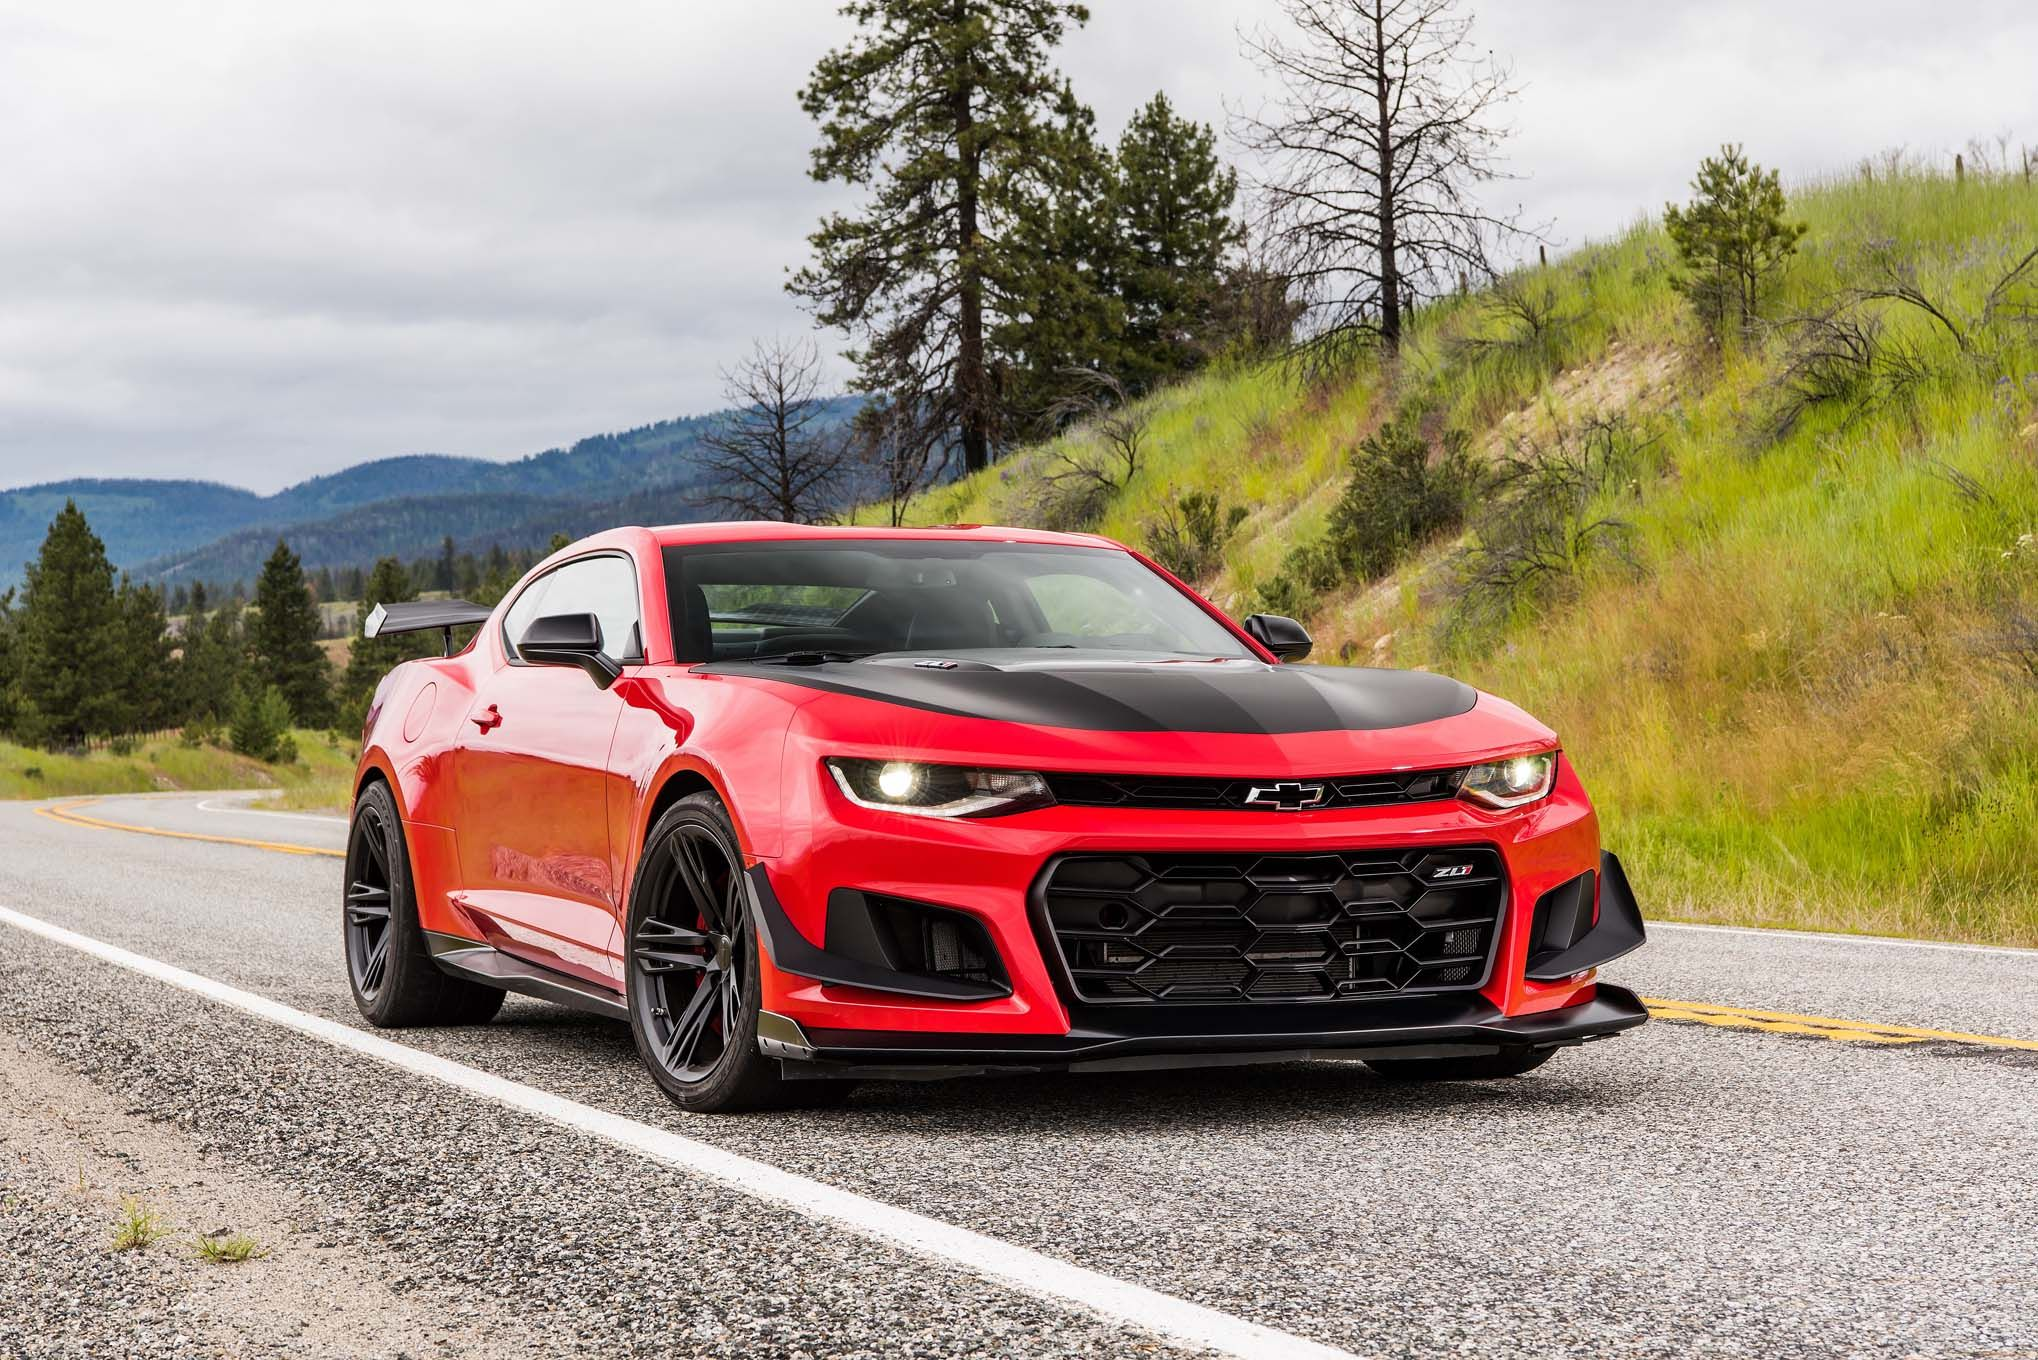 2018 chevrolet camaro zl1 1le fast turbulent and custom street rides pinterest camaro zl1 chevrolet camaro and chevrolet